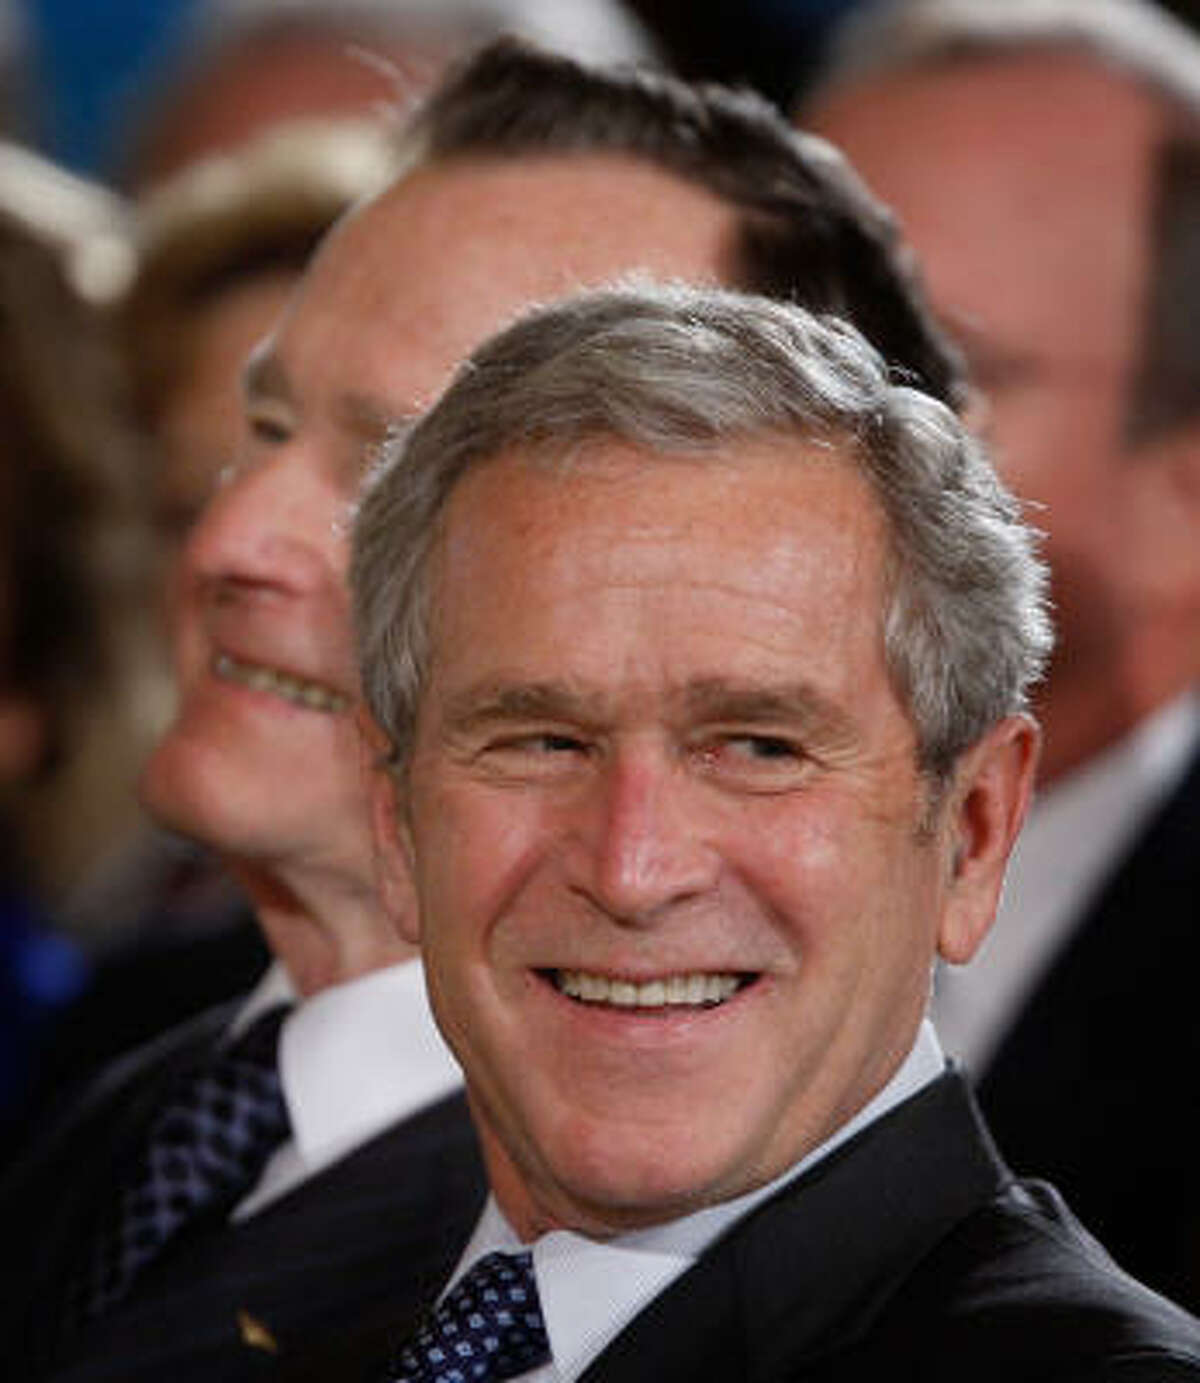 Lately, President George W. Bush's once-auburn locks have given way to gray. He faced the Sept. 11 terror attacks, Hurricane Katrina and seemingly endless criticism during his eight years in office.